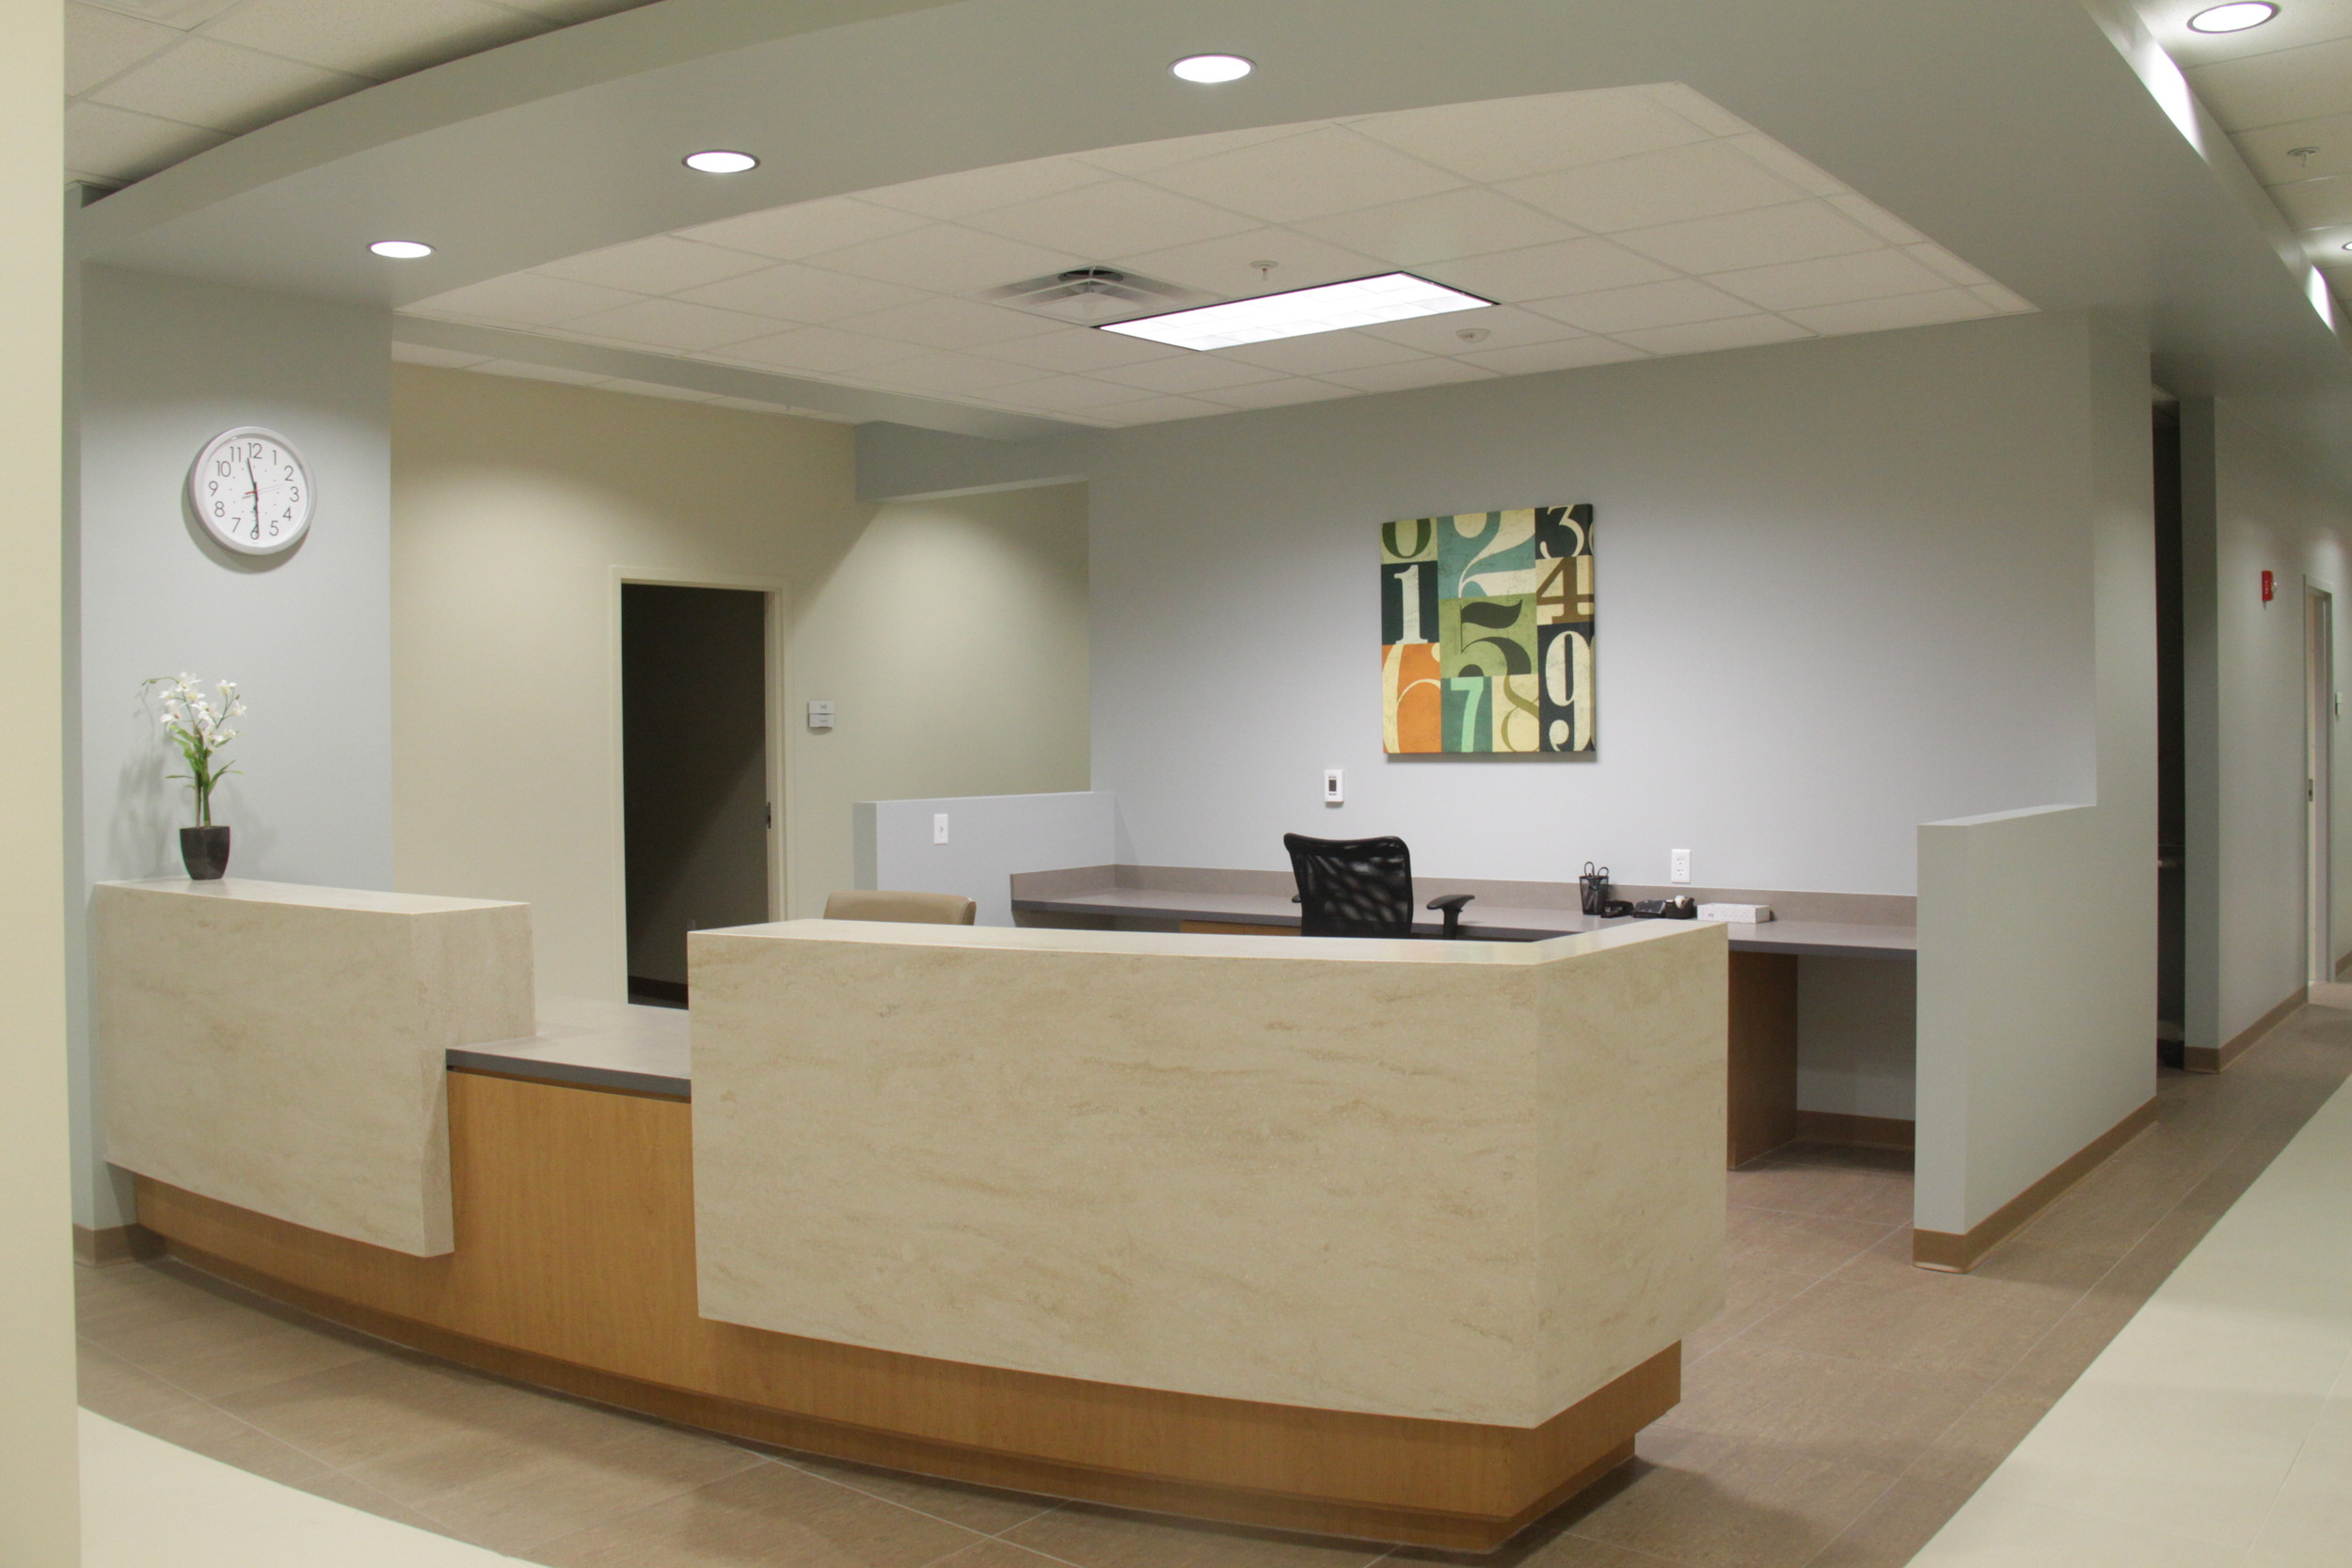 Welcoming Care Center